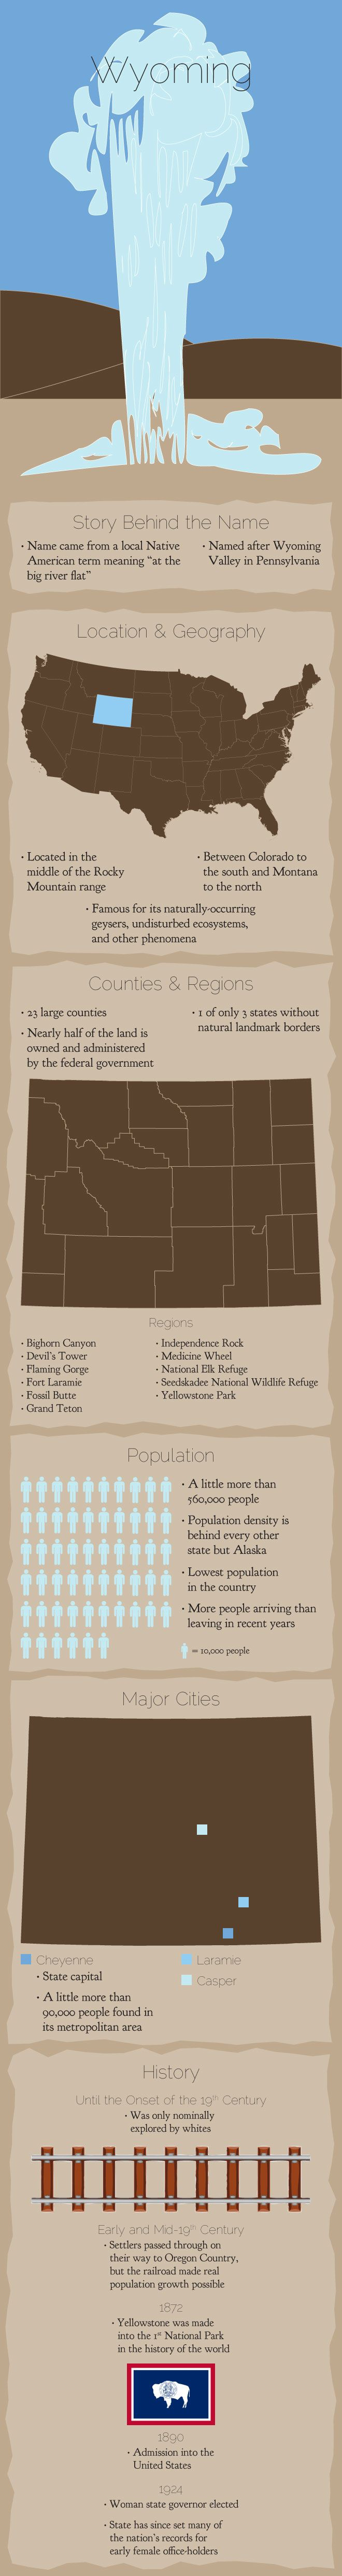 Wyoming Fast Facts Infographic.